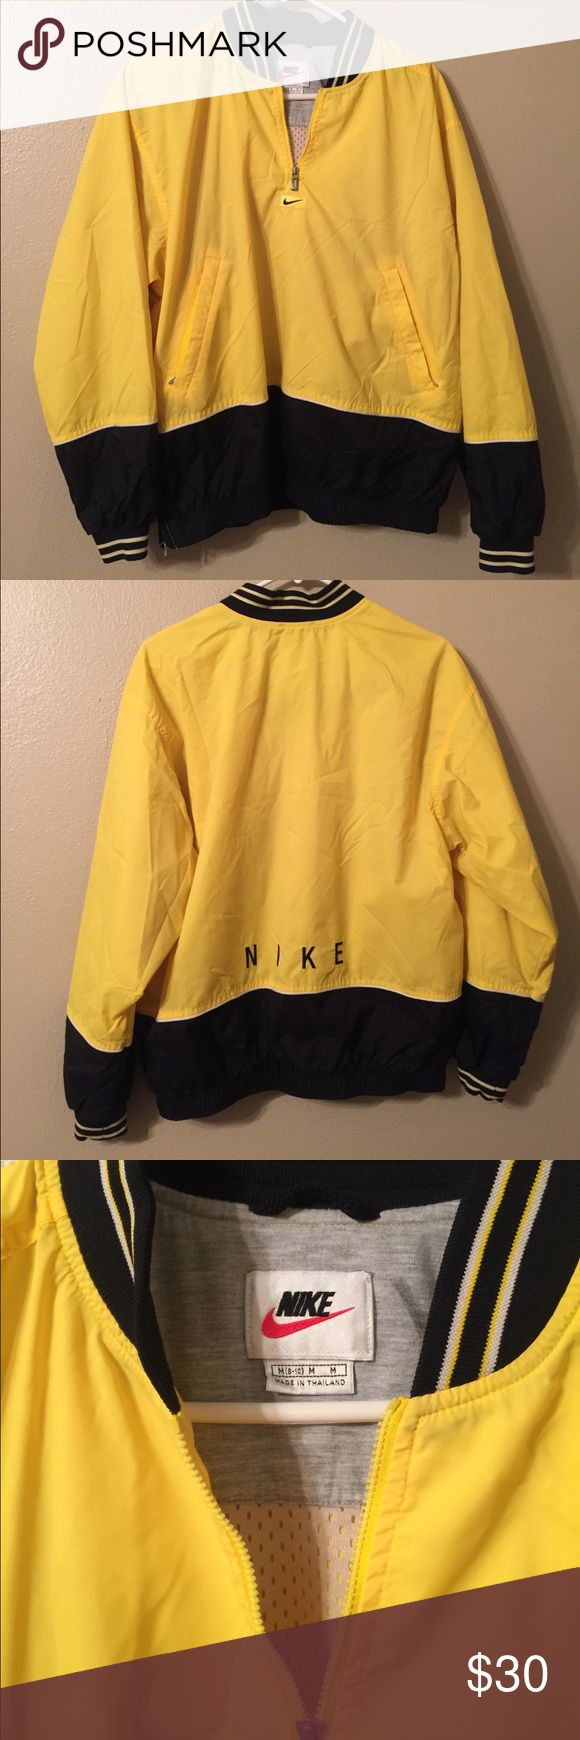 Vintage NIKE windbreaker pullover Mint Condition M Vintage NIKE windbreaker pullover mint condition. I can't find one flaw other than a few wrinkles. Black and yellow half zip jacket with Nike sign in front and NIKE logo on back. This is a women's medium. Bottom has a stretchy waist band that cinches so vey flattering not baggy, and side zipper as well. Inside mesh lining. Amazing 90's Nike windbreaker jacket. Price Firm, Ships next day  Nike Tops Sweatshirts & Hoodies